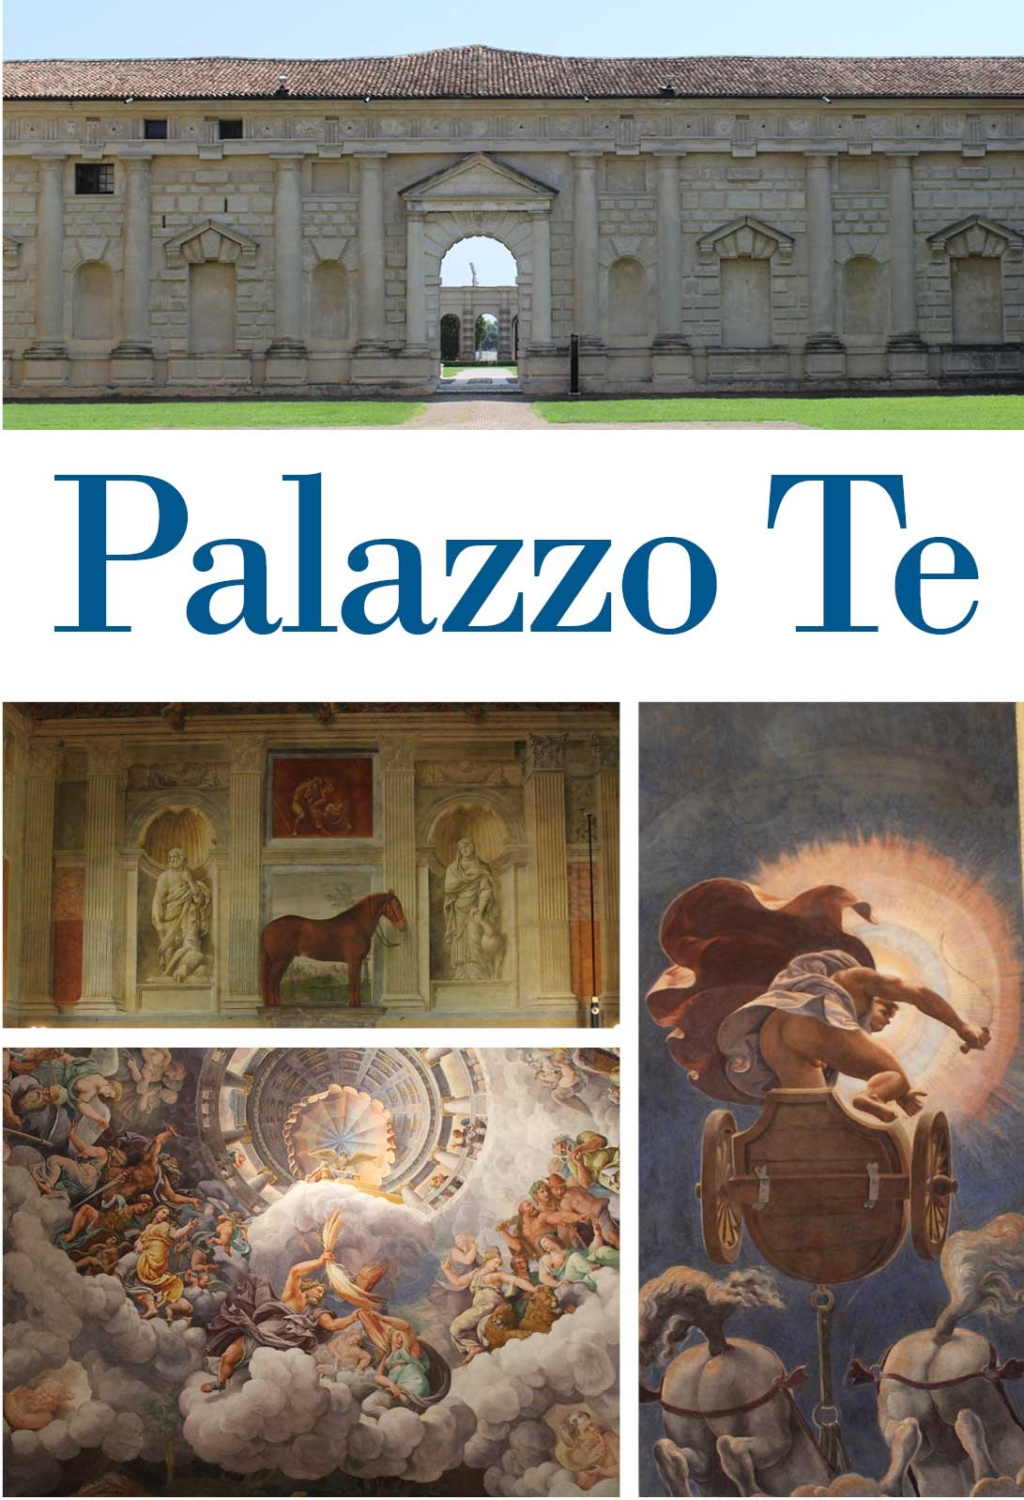 Palazzo Te and Charles Dickens